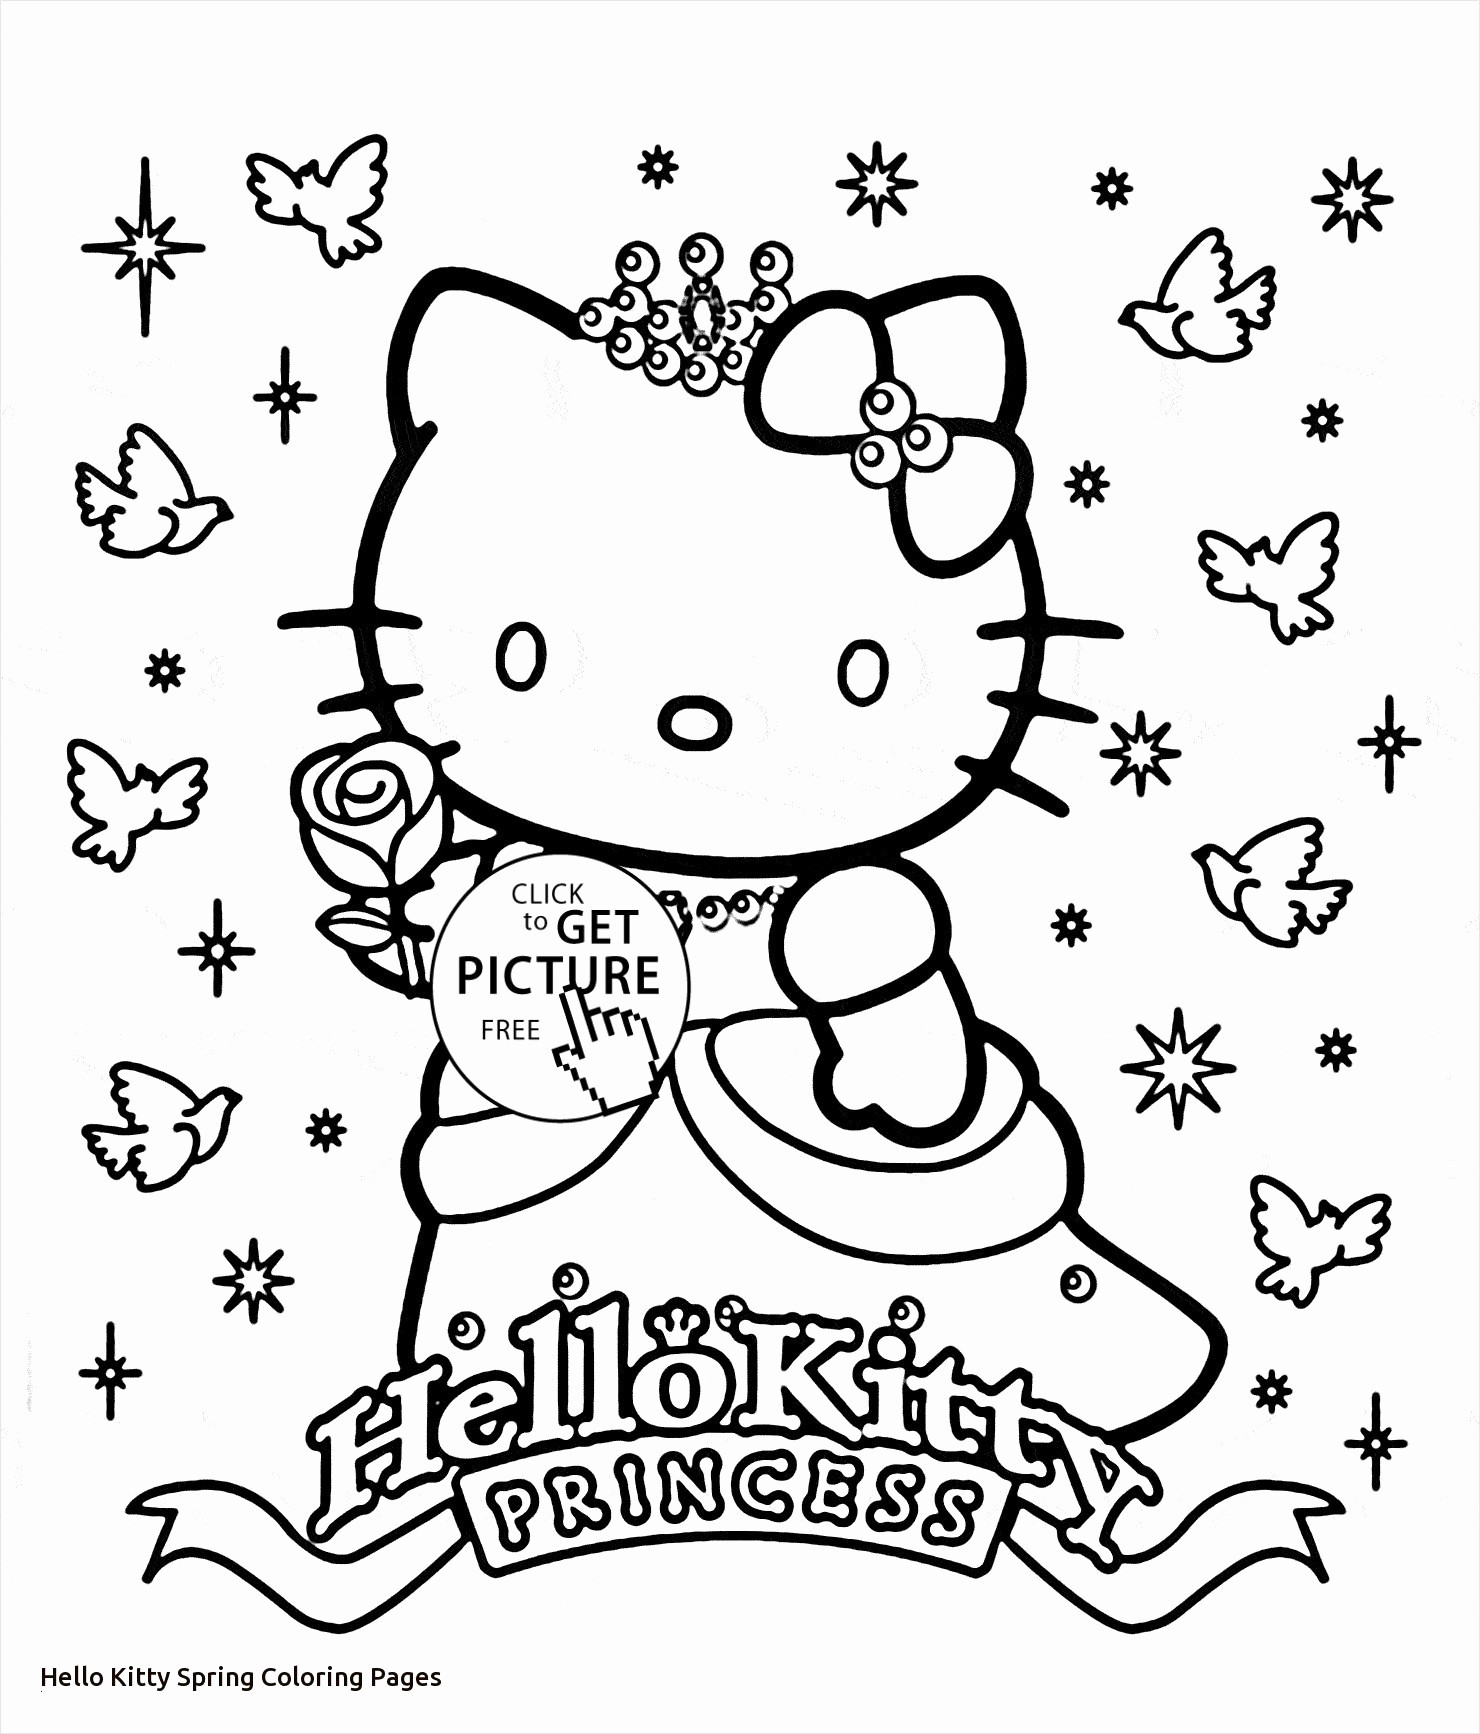 Malvorlagen Hello Kitty Genial Hello Kitty Zum Ausmalen Fotos Designs Hello Kitty Bilder Txdf Sammlung